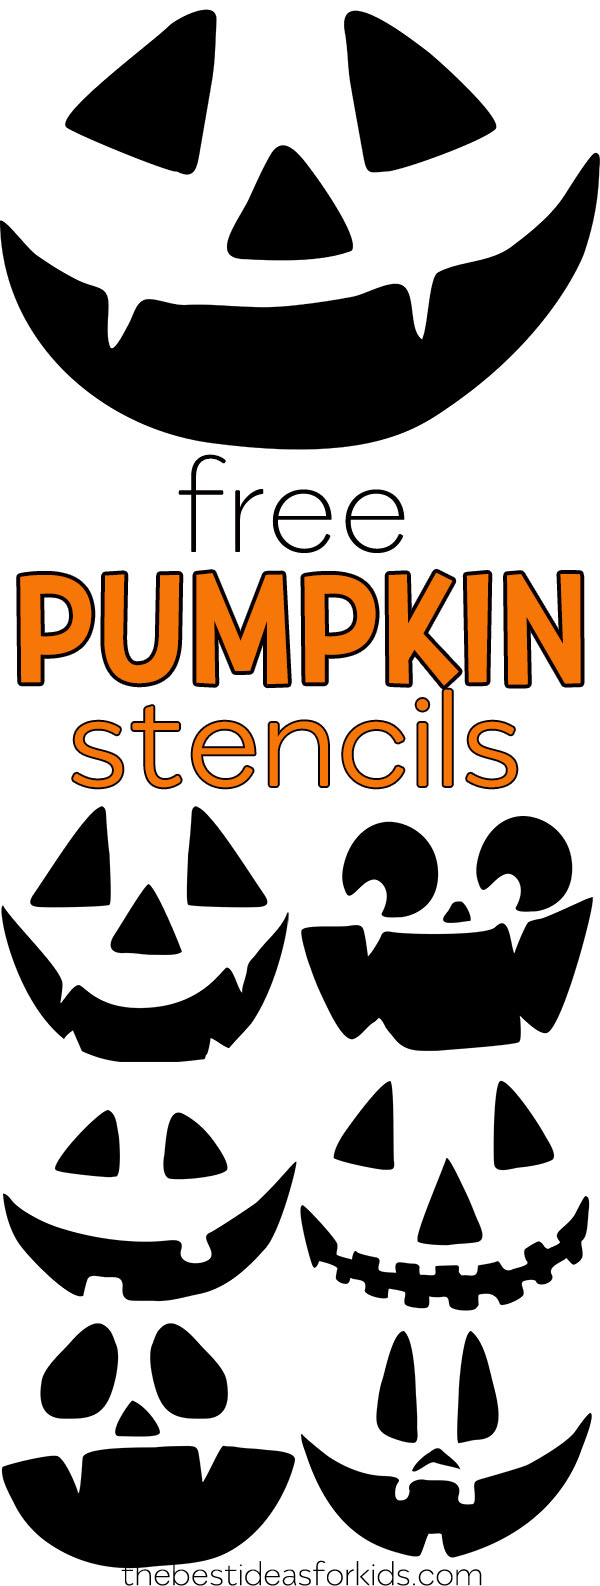 Free Pumpkin Carving Stencils - The Best Ideas For Kids - Free Pumpkin Printable Carving Patterns